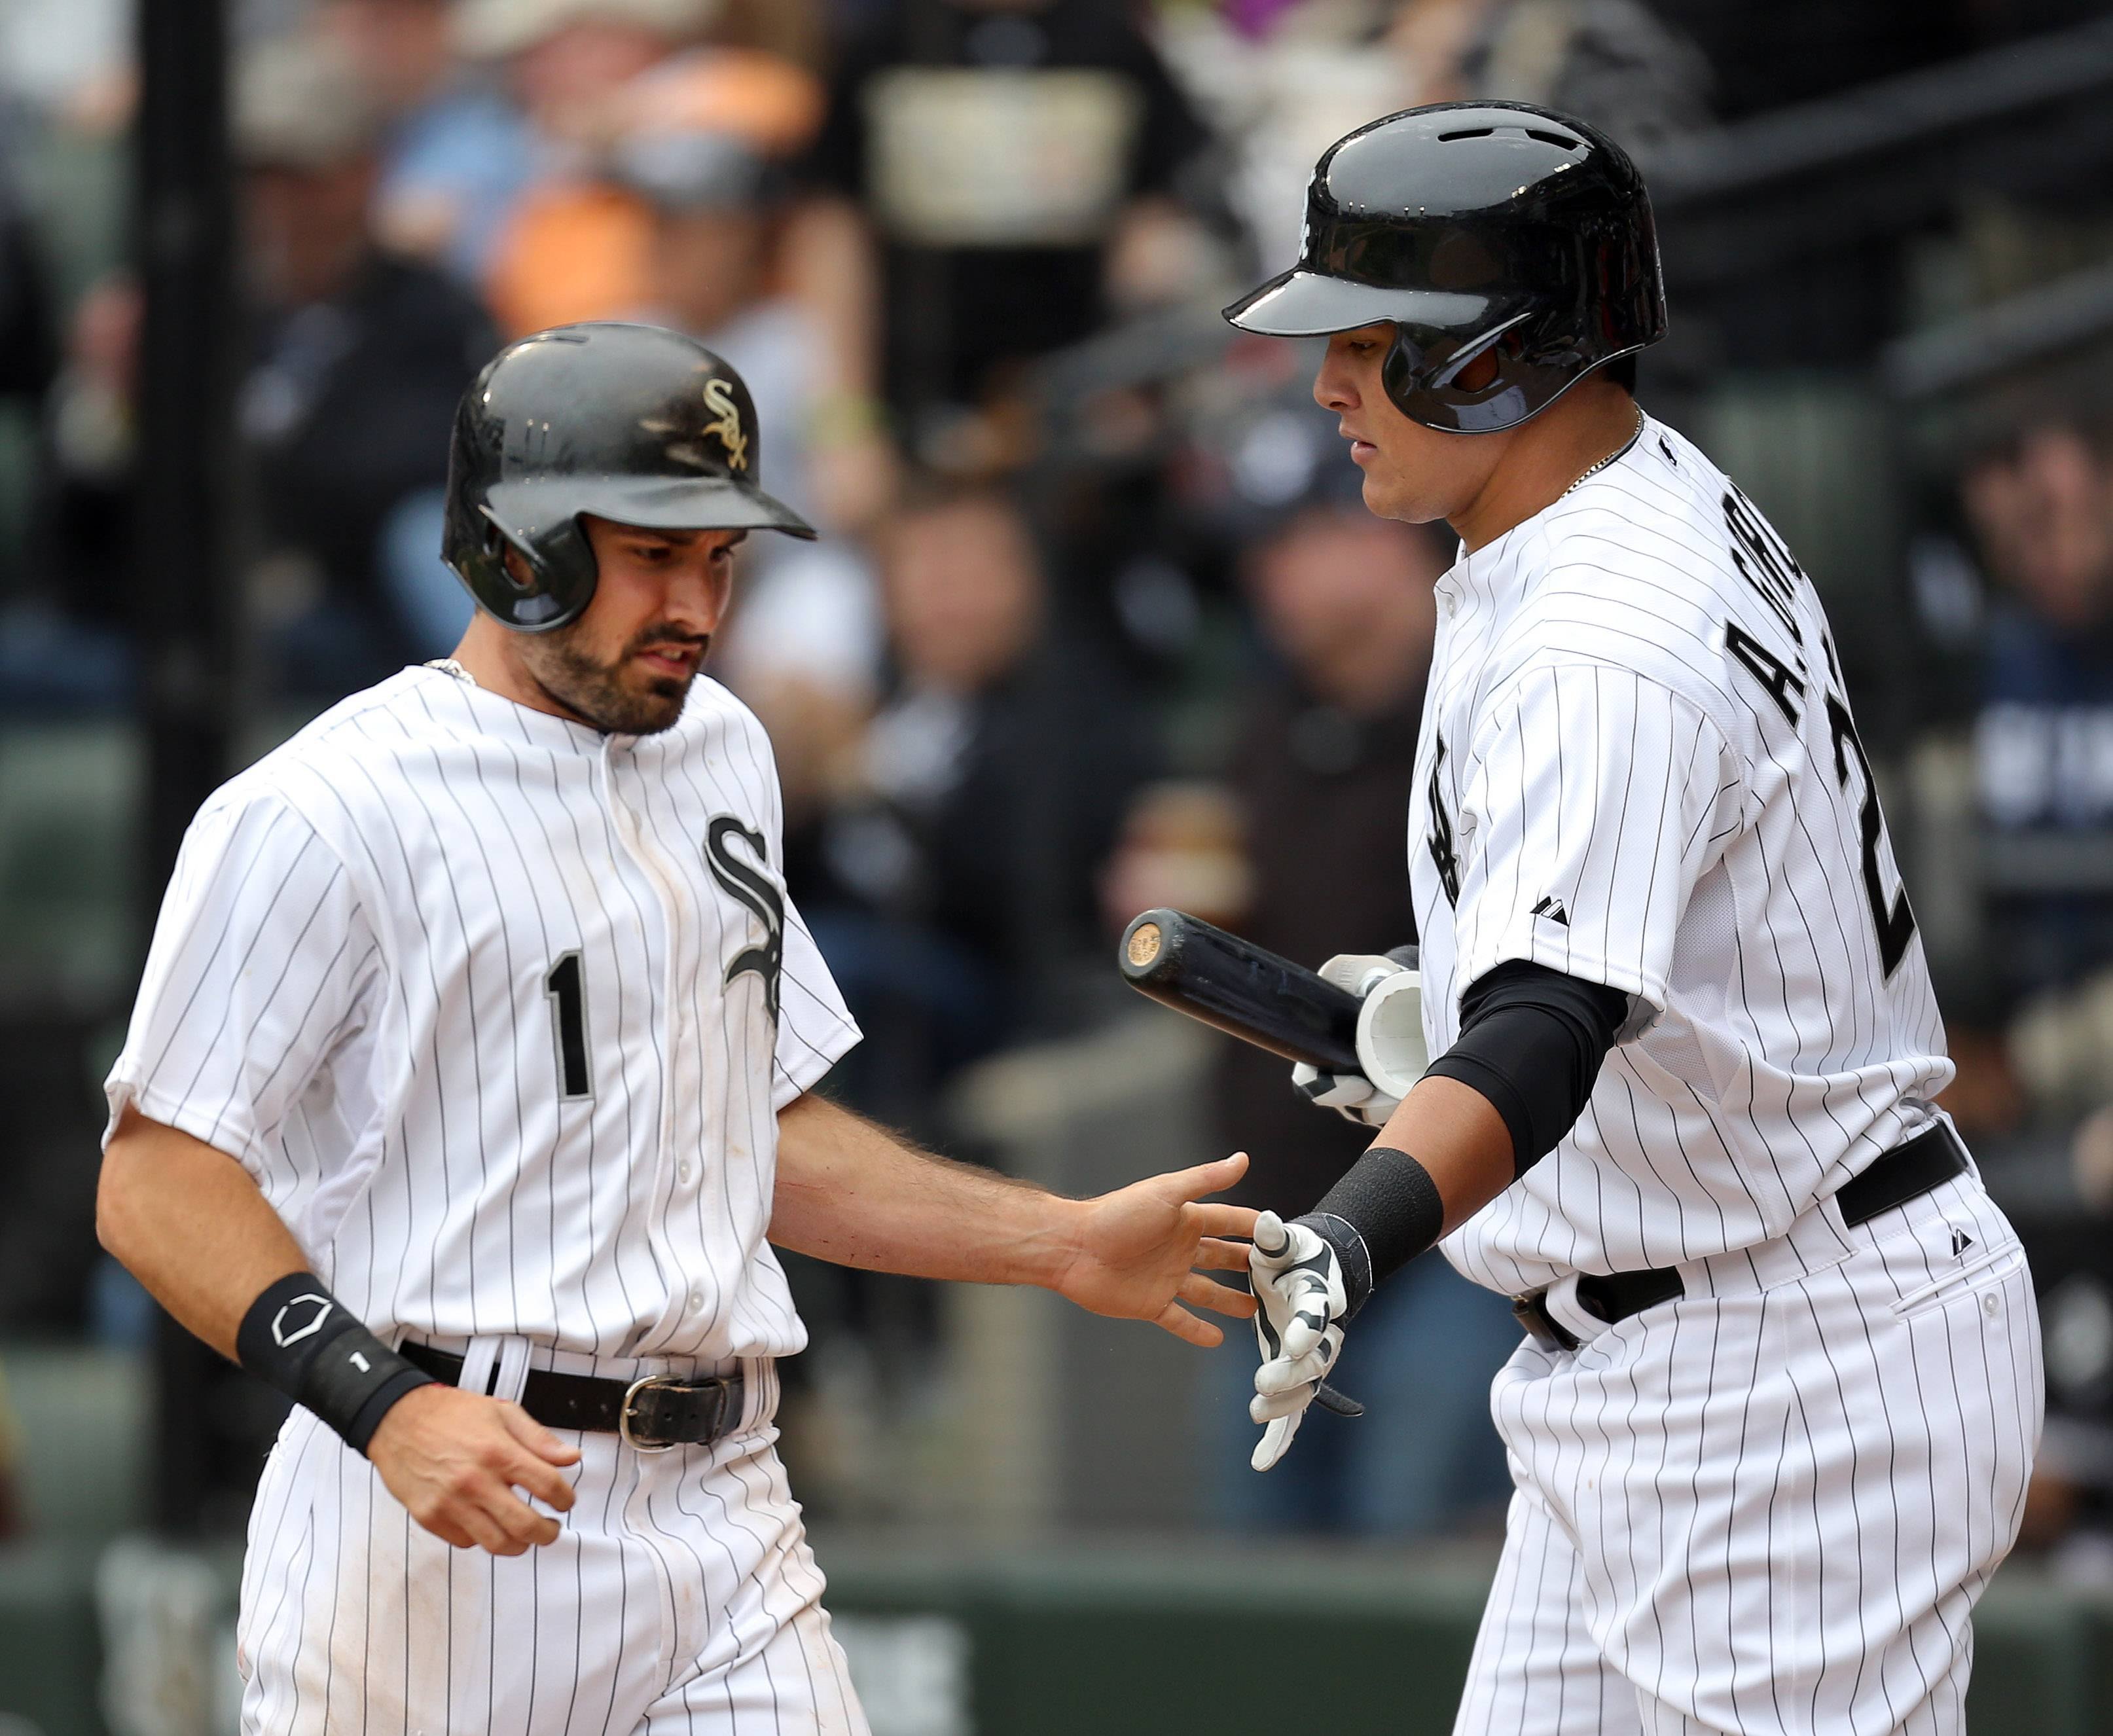 Chicago White Sox left fielder Adam Eaton high-fives Chicago White Sox right fielder Avisail Garcia.